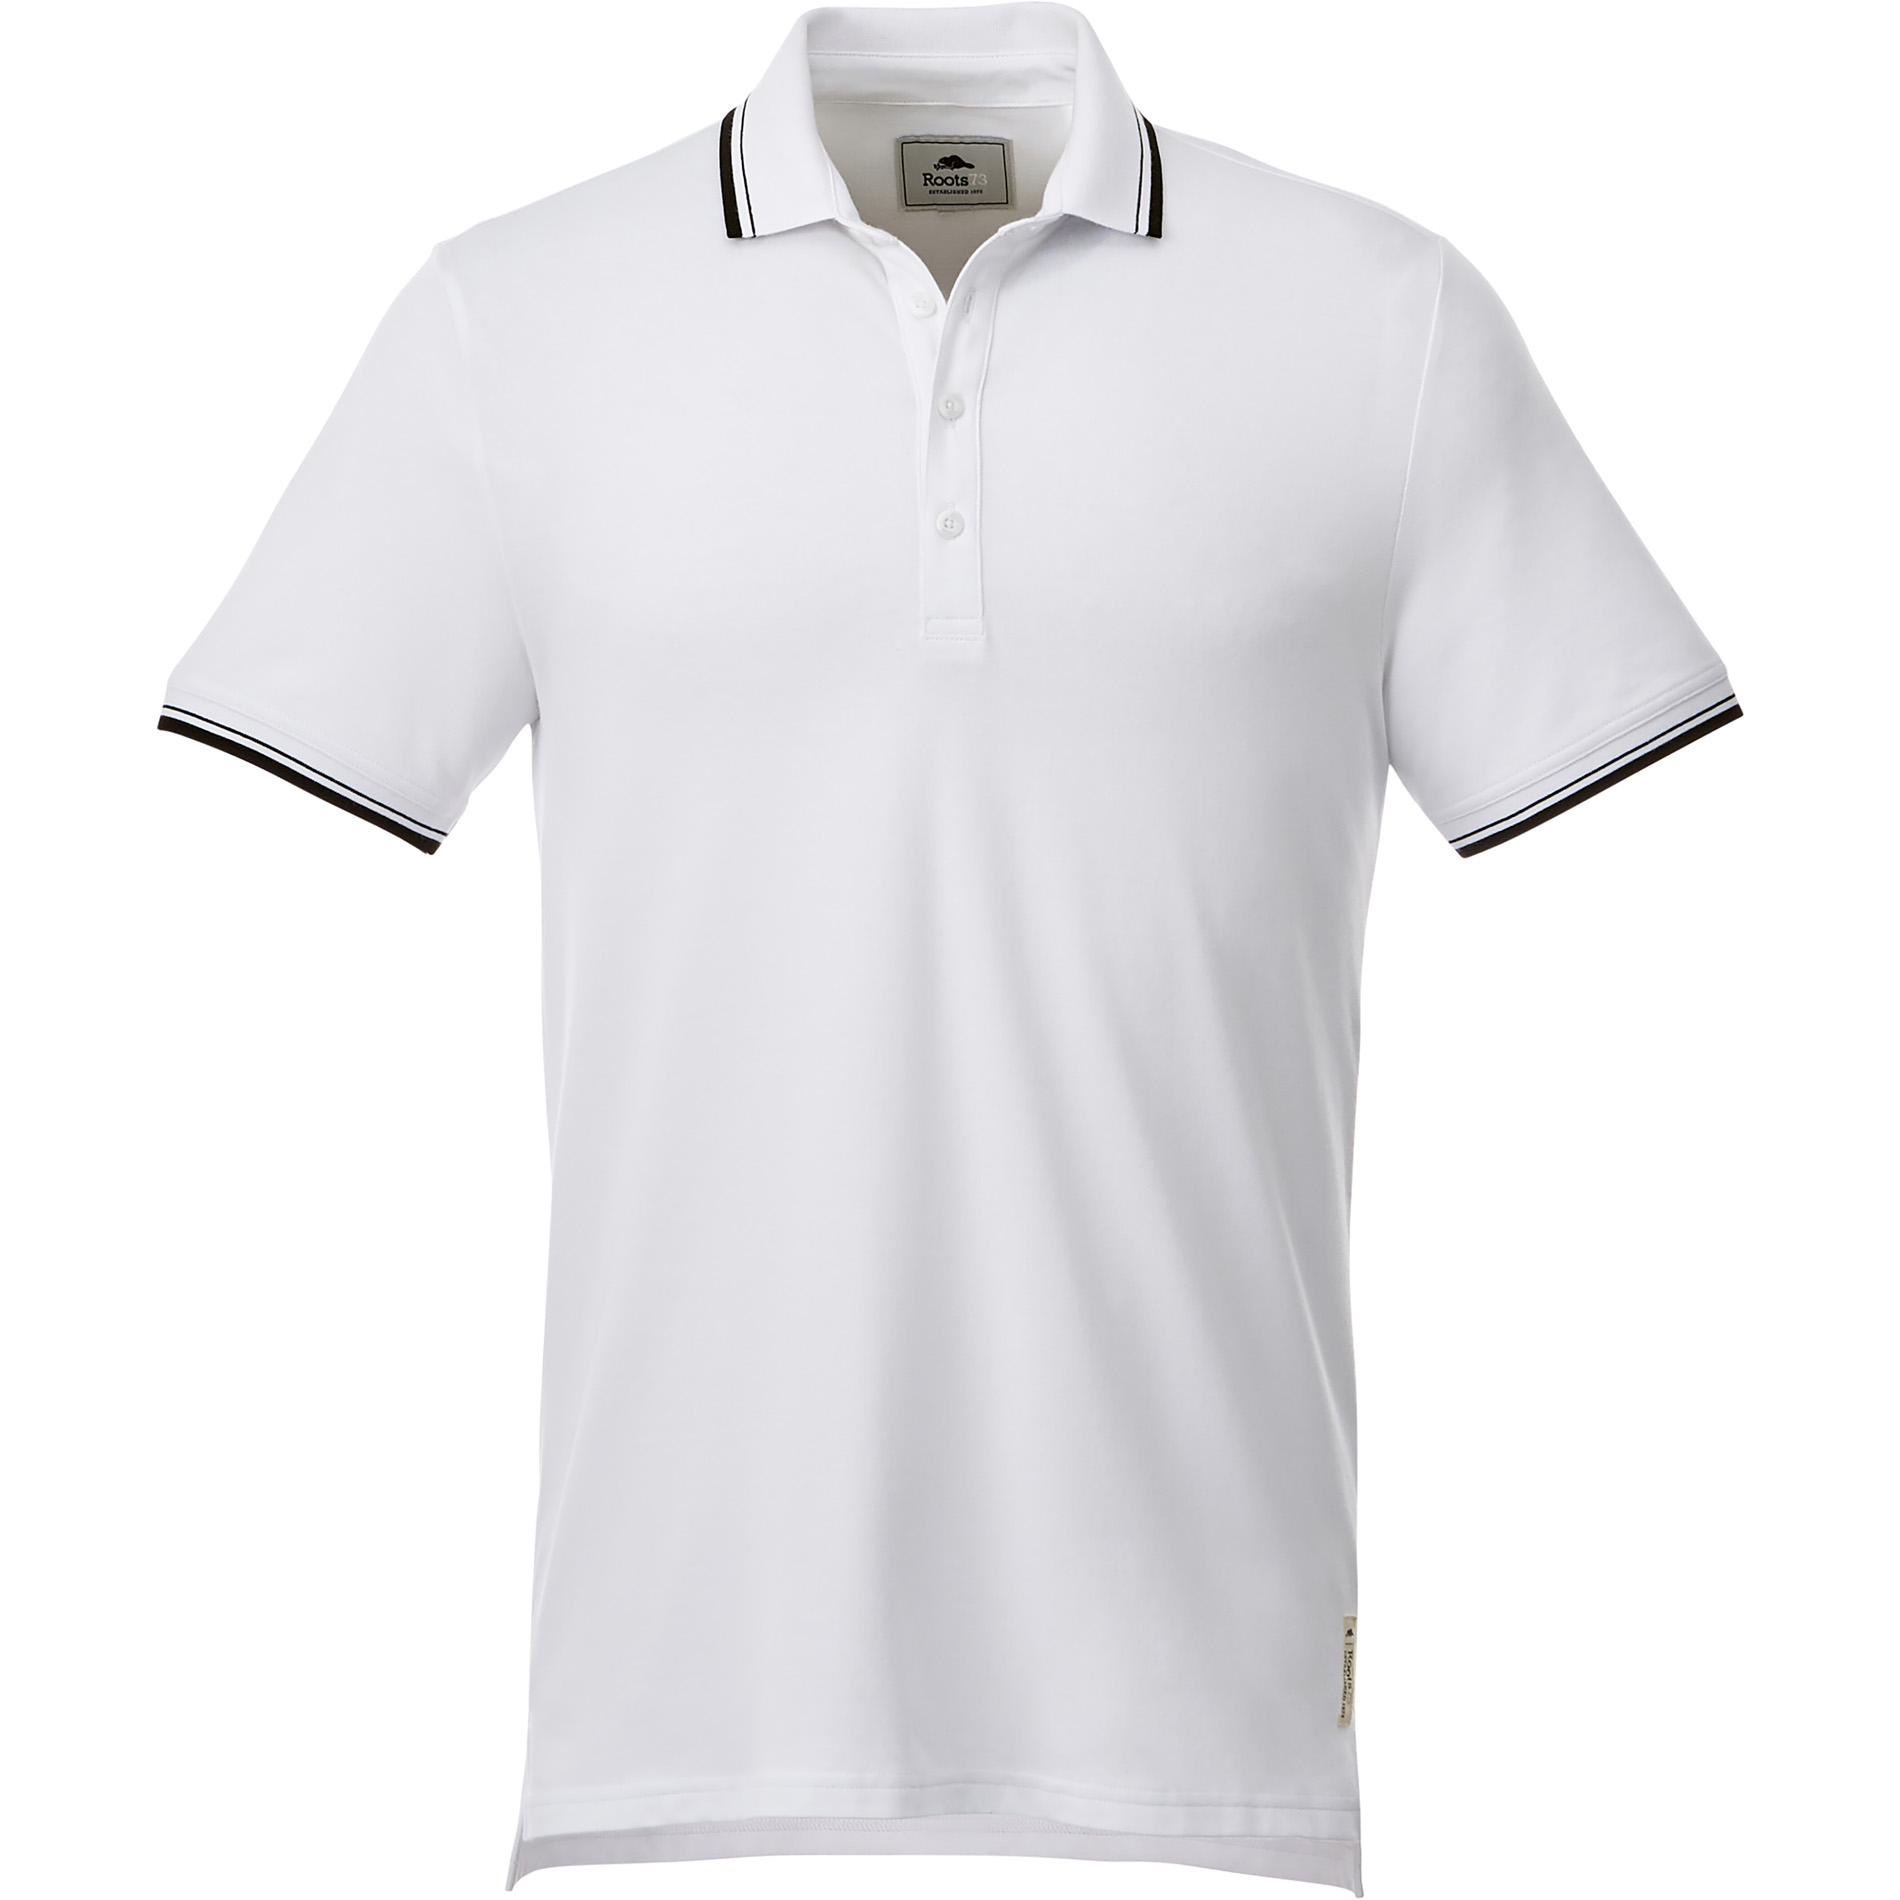 Roots73 TM16613 - M-LIMESTONE Roots73 SS Polo